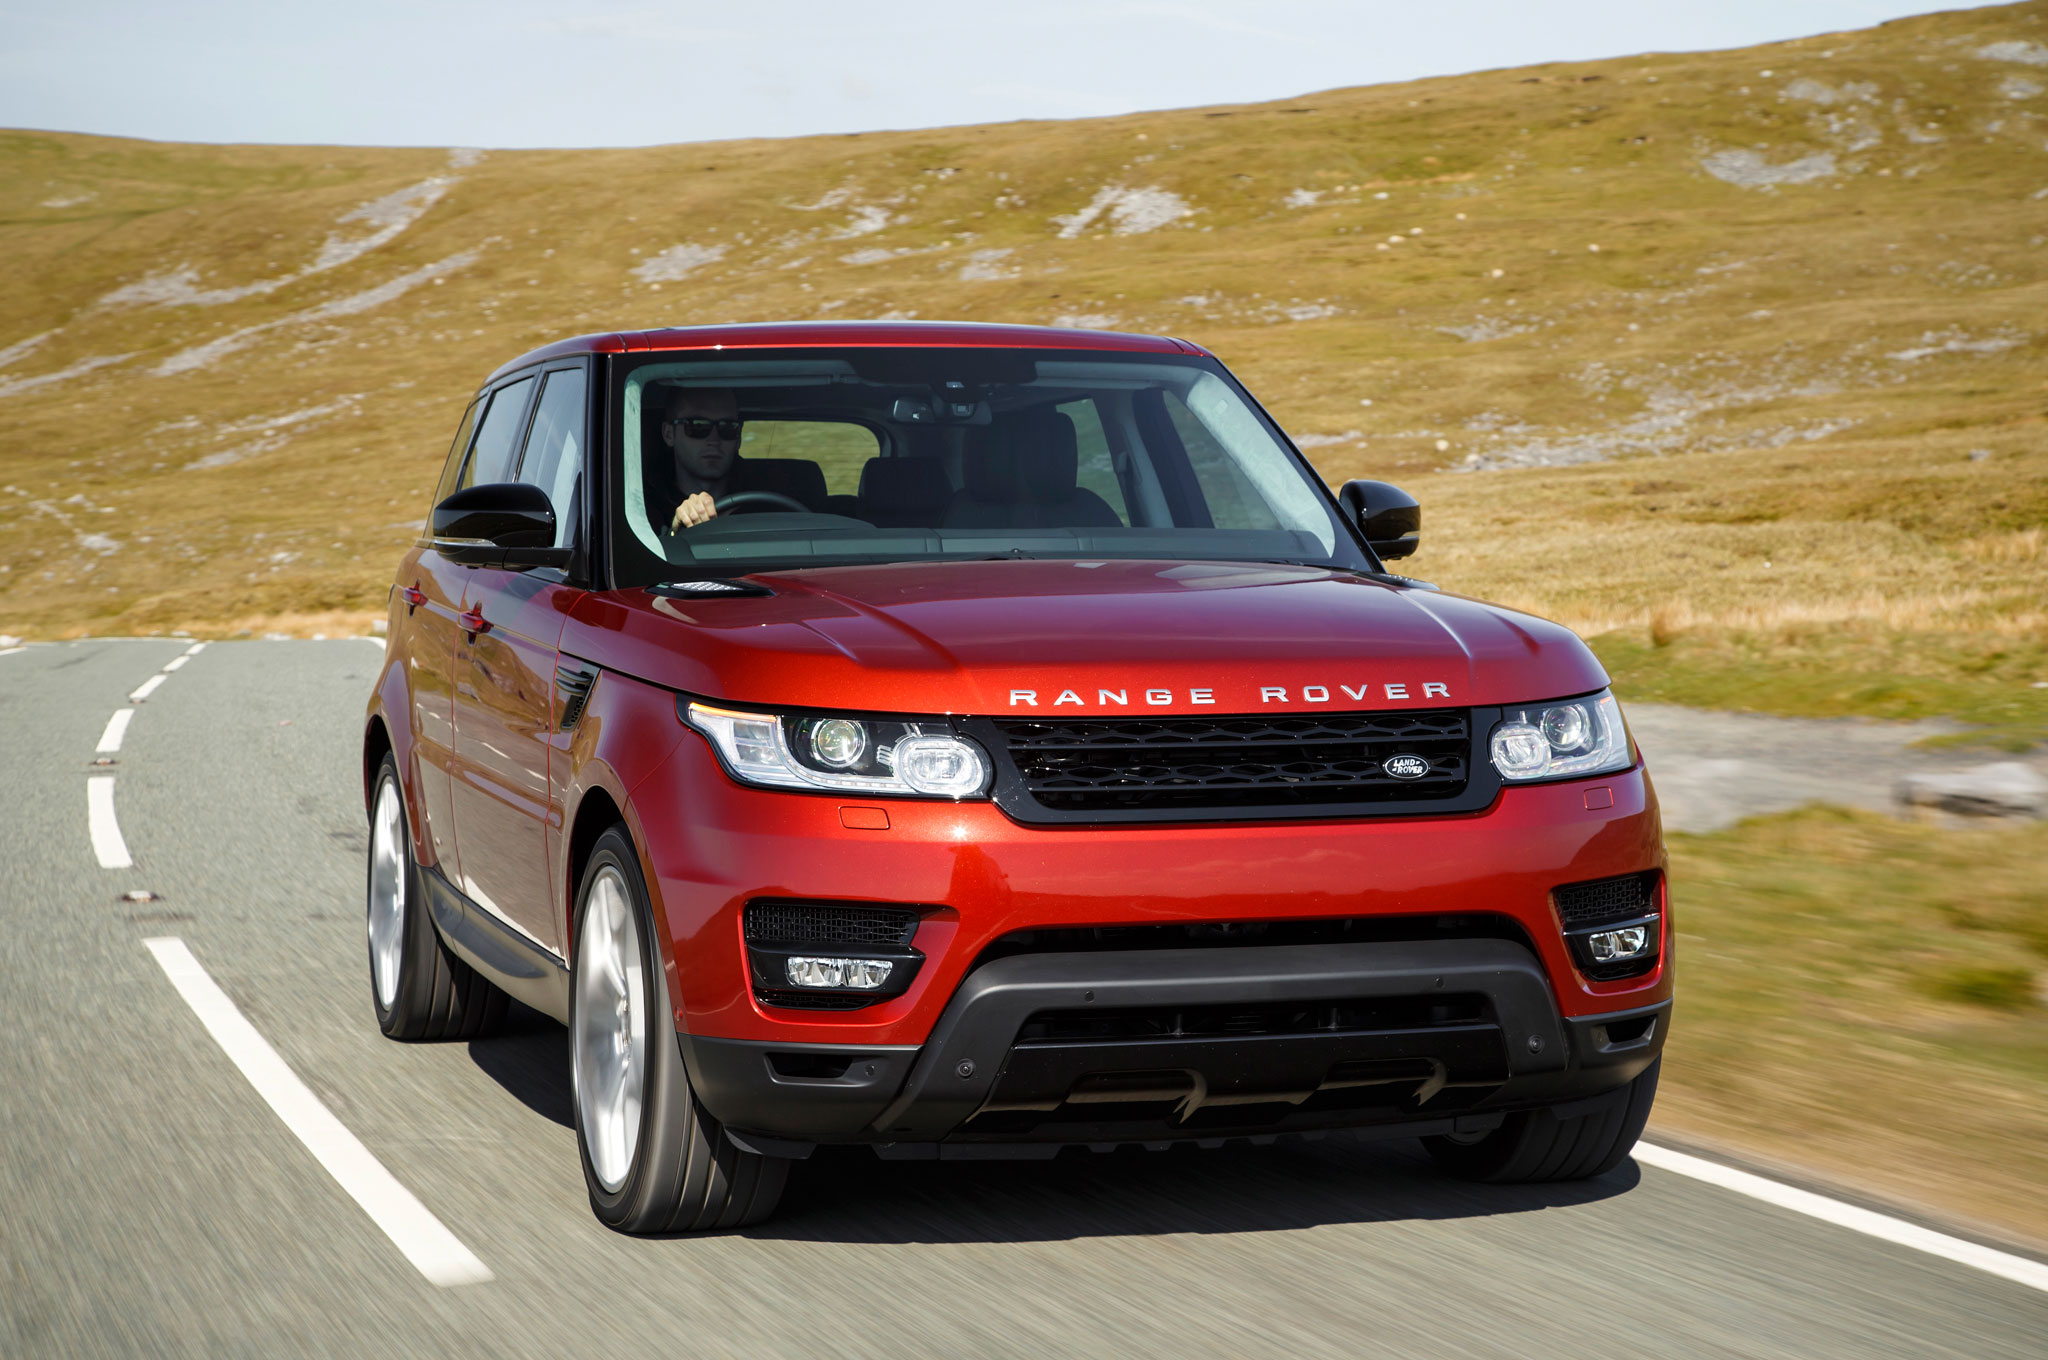 2014 Land Rover Range Rover Sport V8 Supercharged Front Right View1